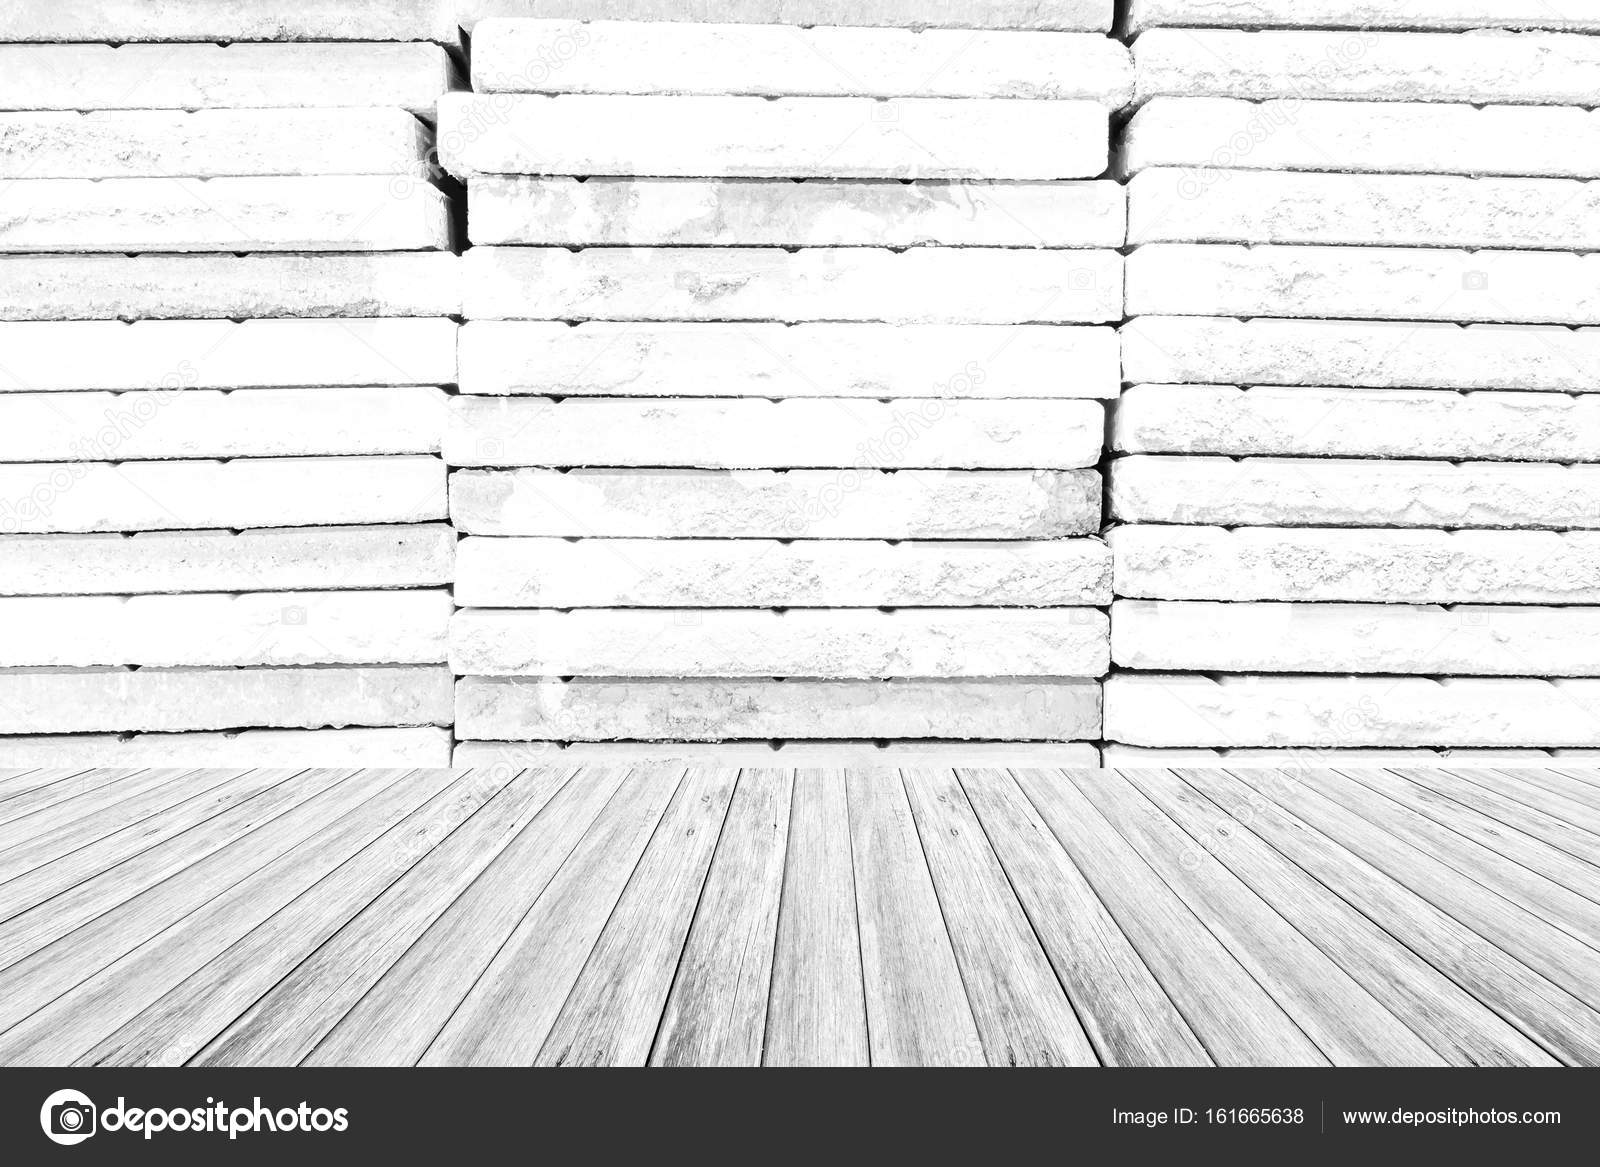 Stone wall texture stock photo pongmoji 161665638 stone wall texture background surface natural color process in white color with white wood terrace with world map photo by pongmoji gumiabroncs Gallery